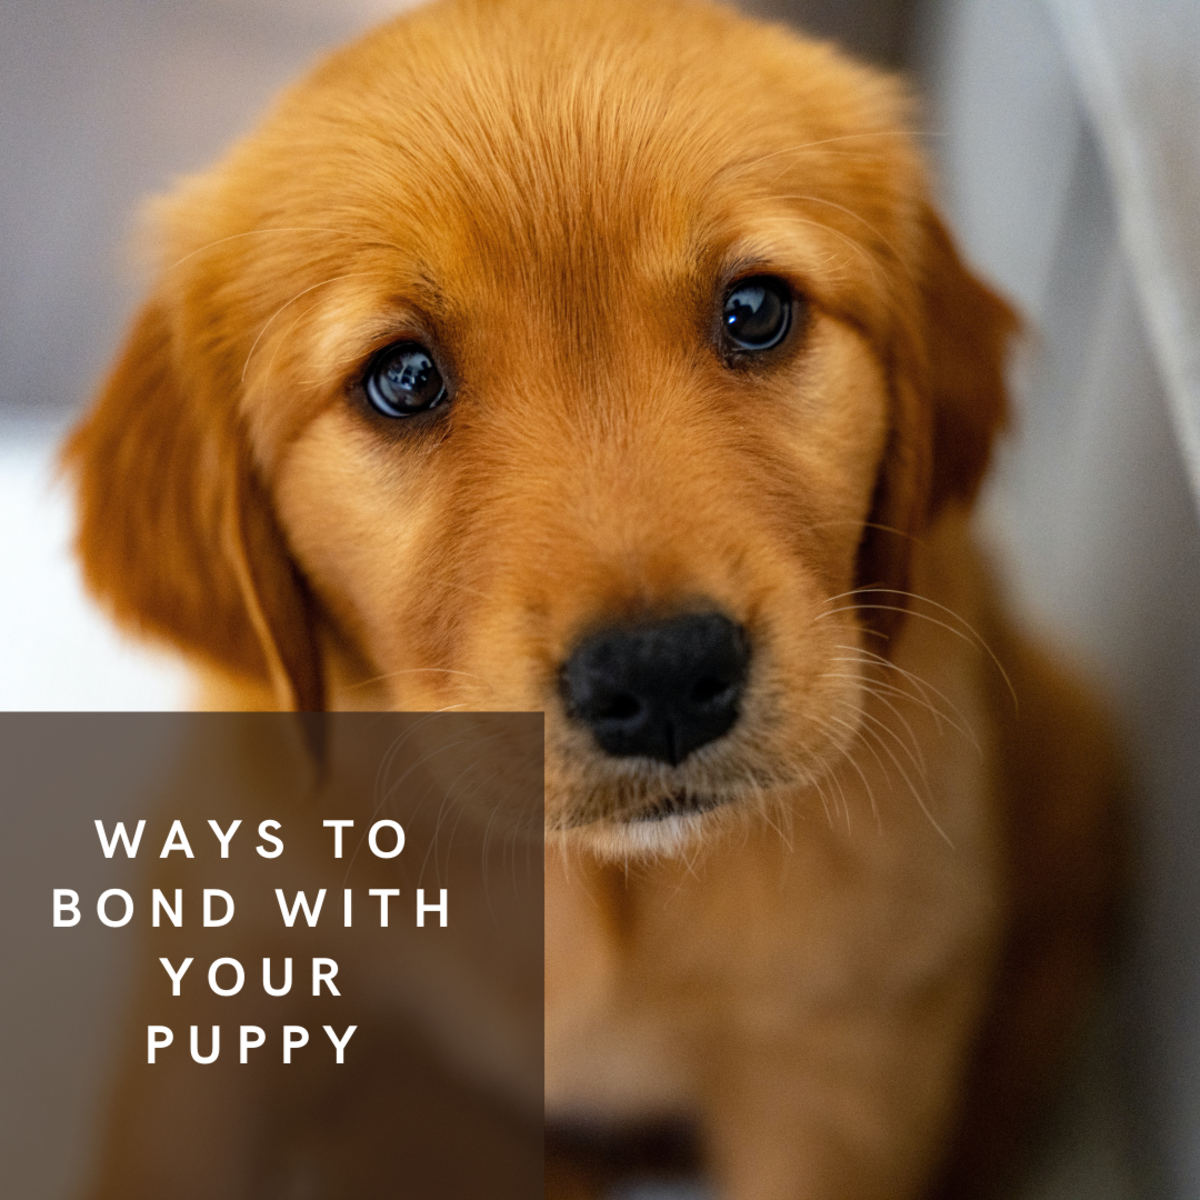 It's important to bond with your new puppy.